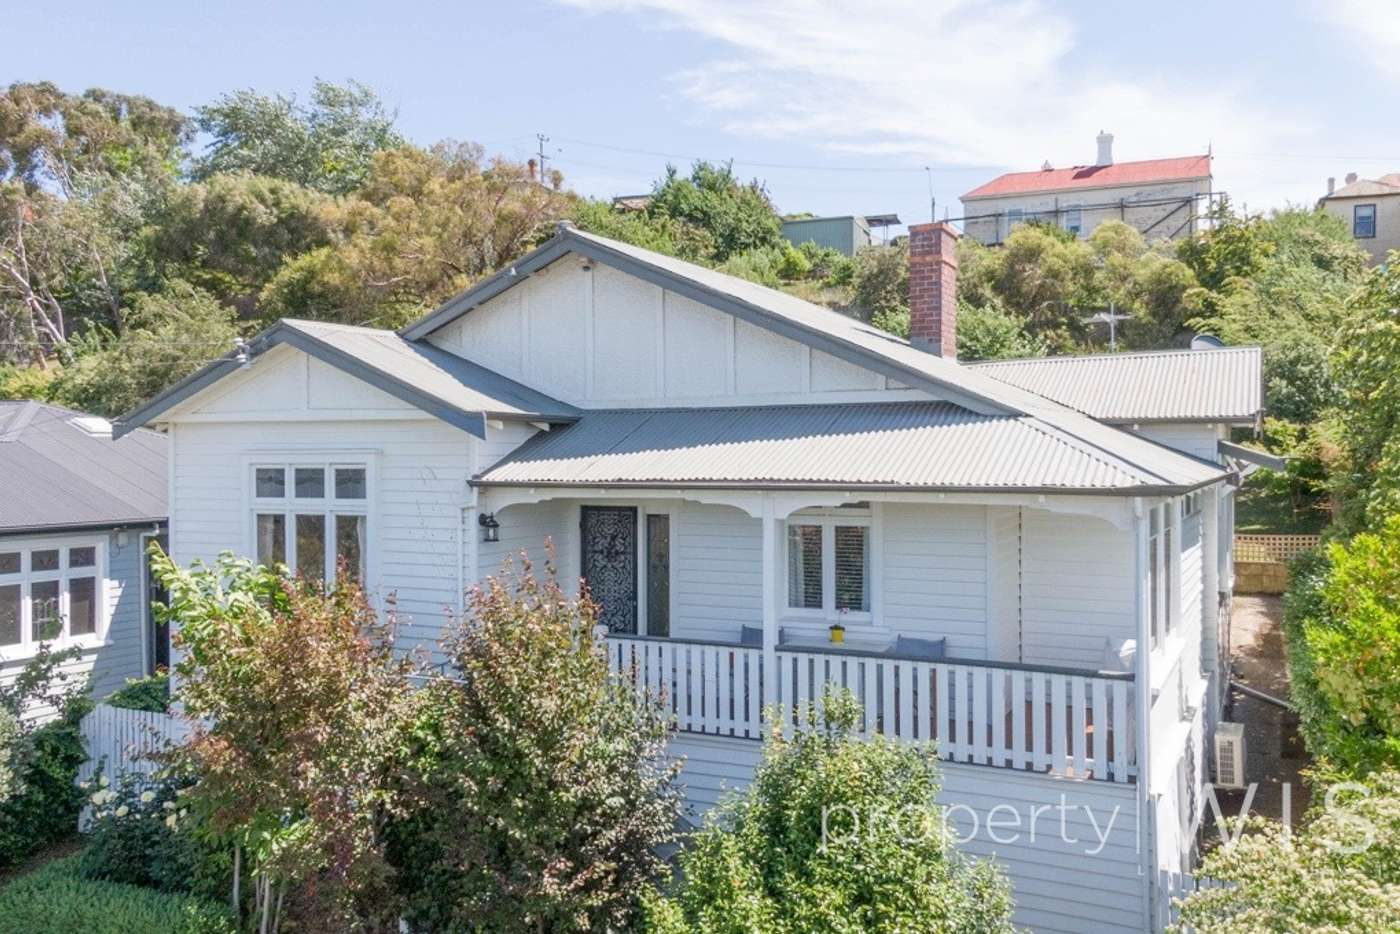 Main view of Homely house listing, 14 Junction Street, Newstead TAS 7250